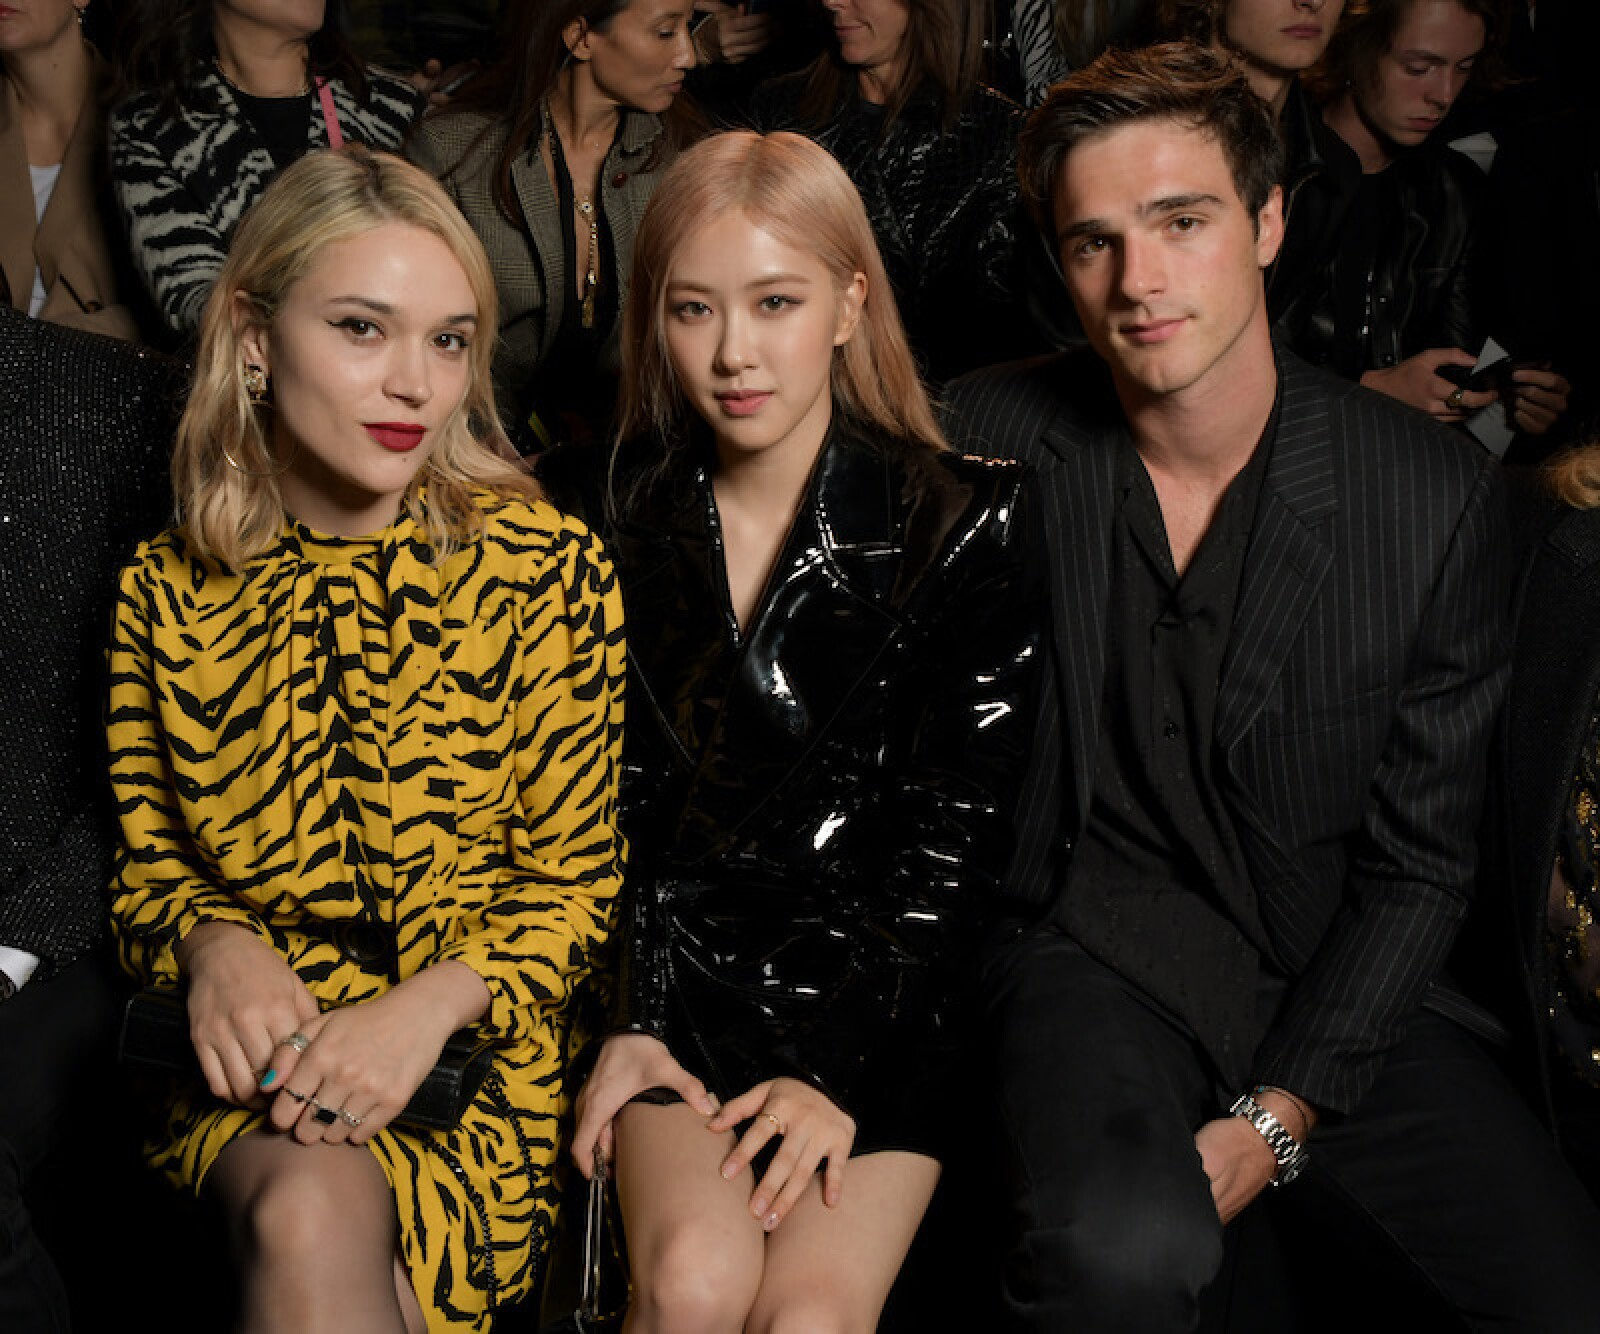 Saint Laurent show, Front Row, Spring Summer 2020, Paris Fashion Week, France - 24 Sep 2019